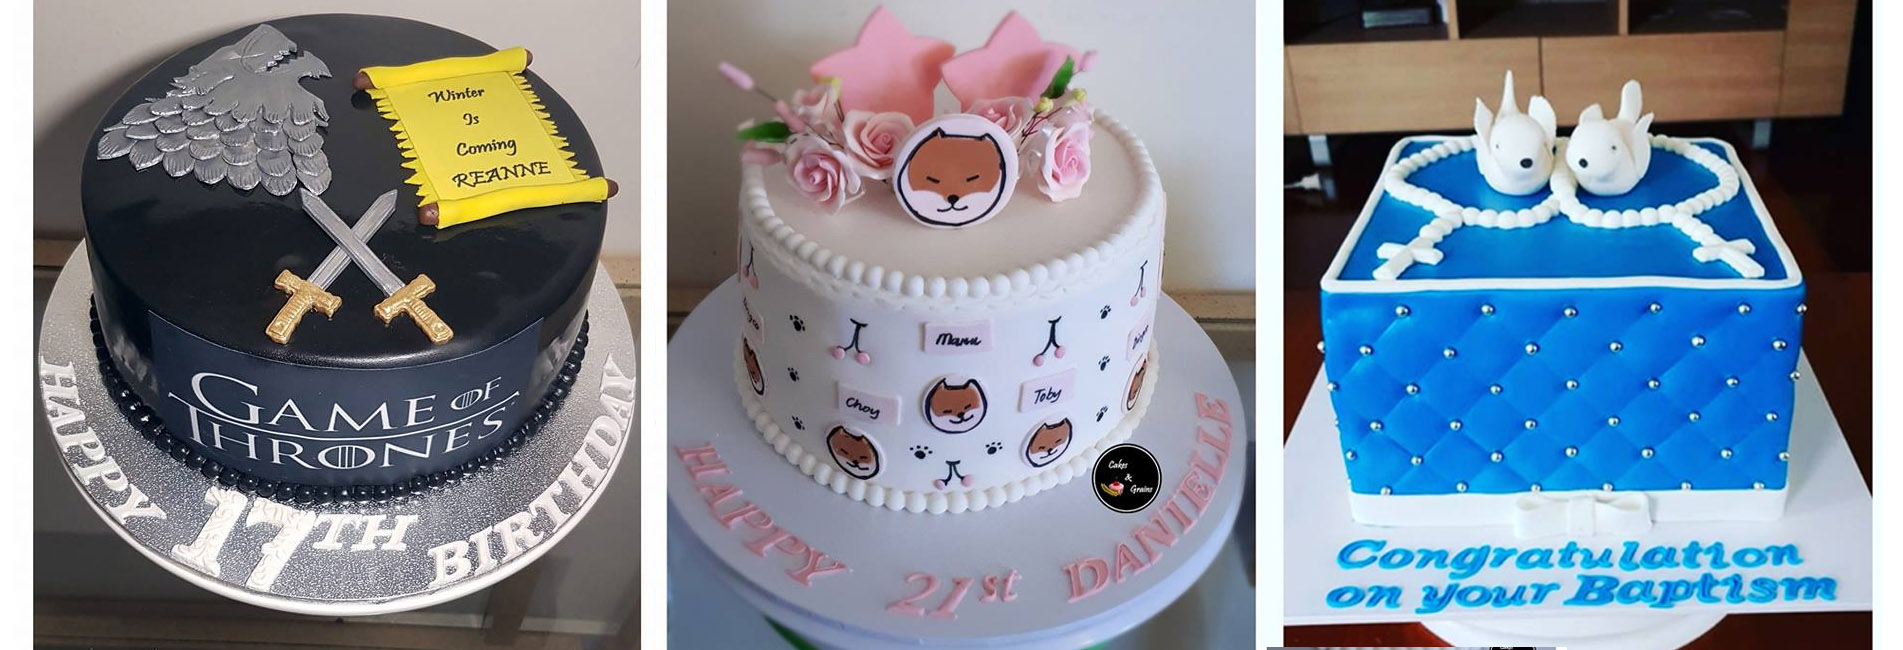 Wedding Cakes Melbourne, Birthday Cakes Cranbourne, Filipino Cakes Dandenong